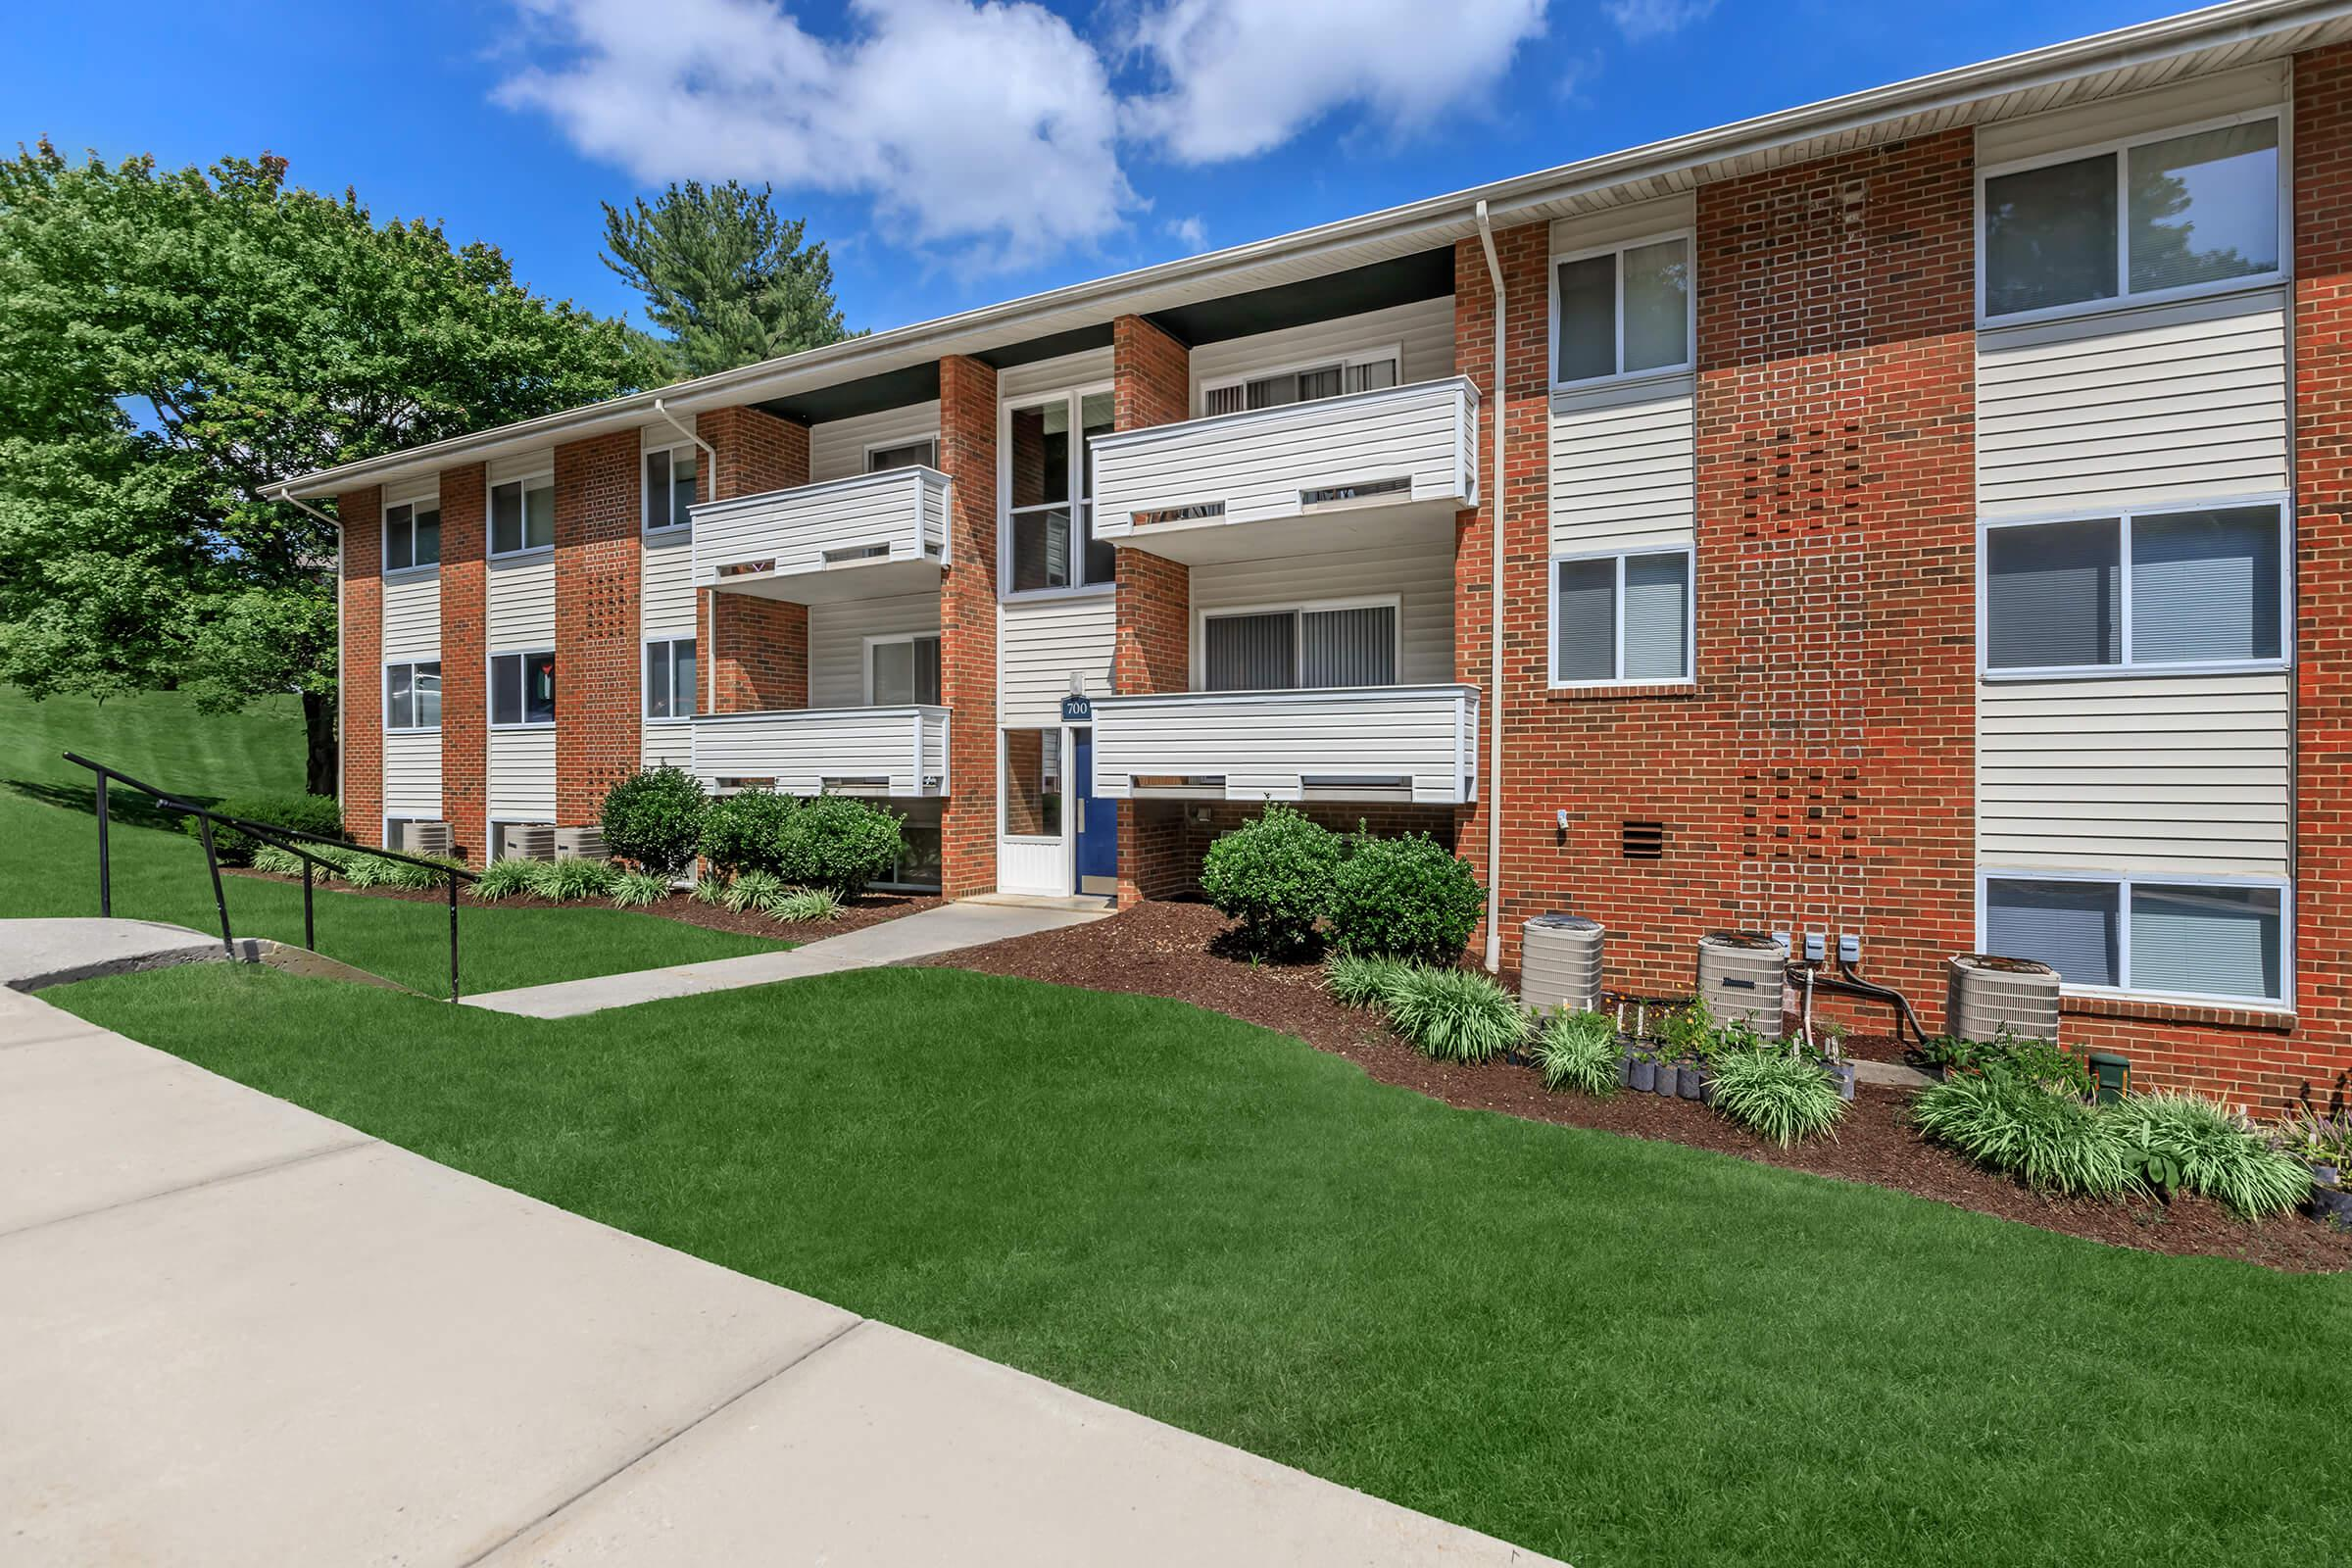 WELCOME HOME TO WINDSOR HILLS APARTMENTS